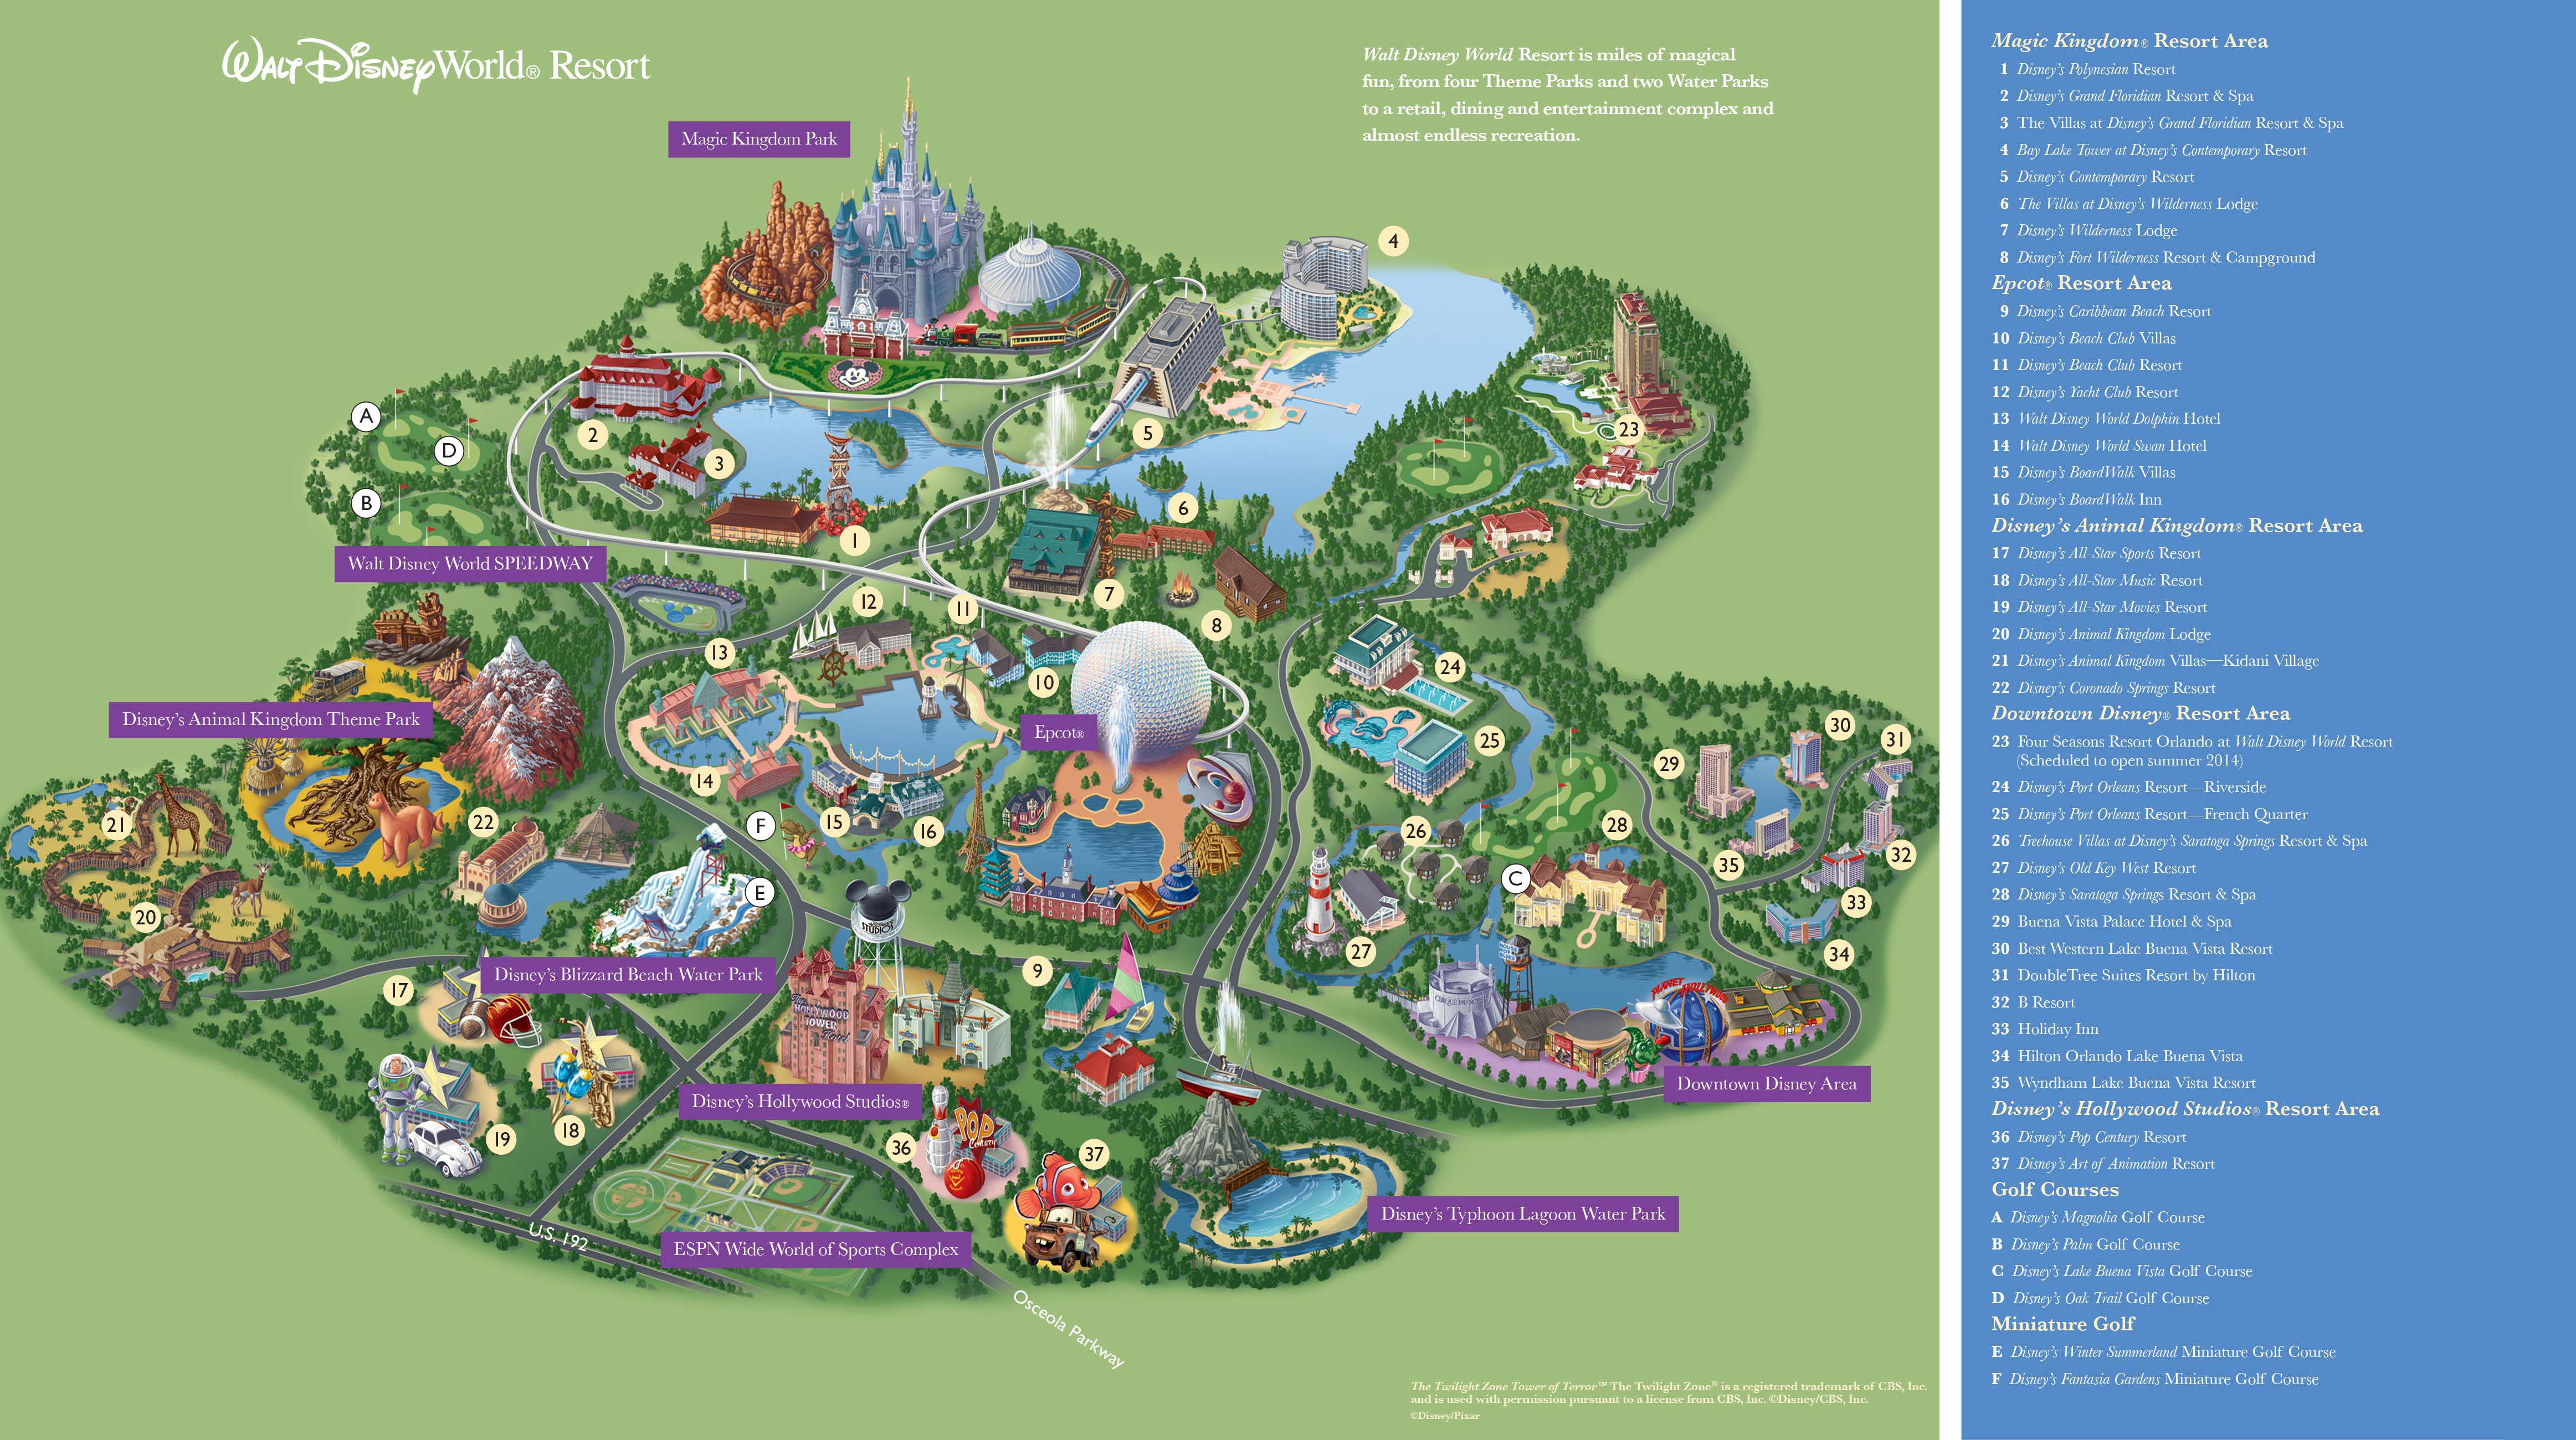 Walt Disney World Maps - Parks And Resorts In 2019 | Travel - Theme - Printable Disney World Maps 2017